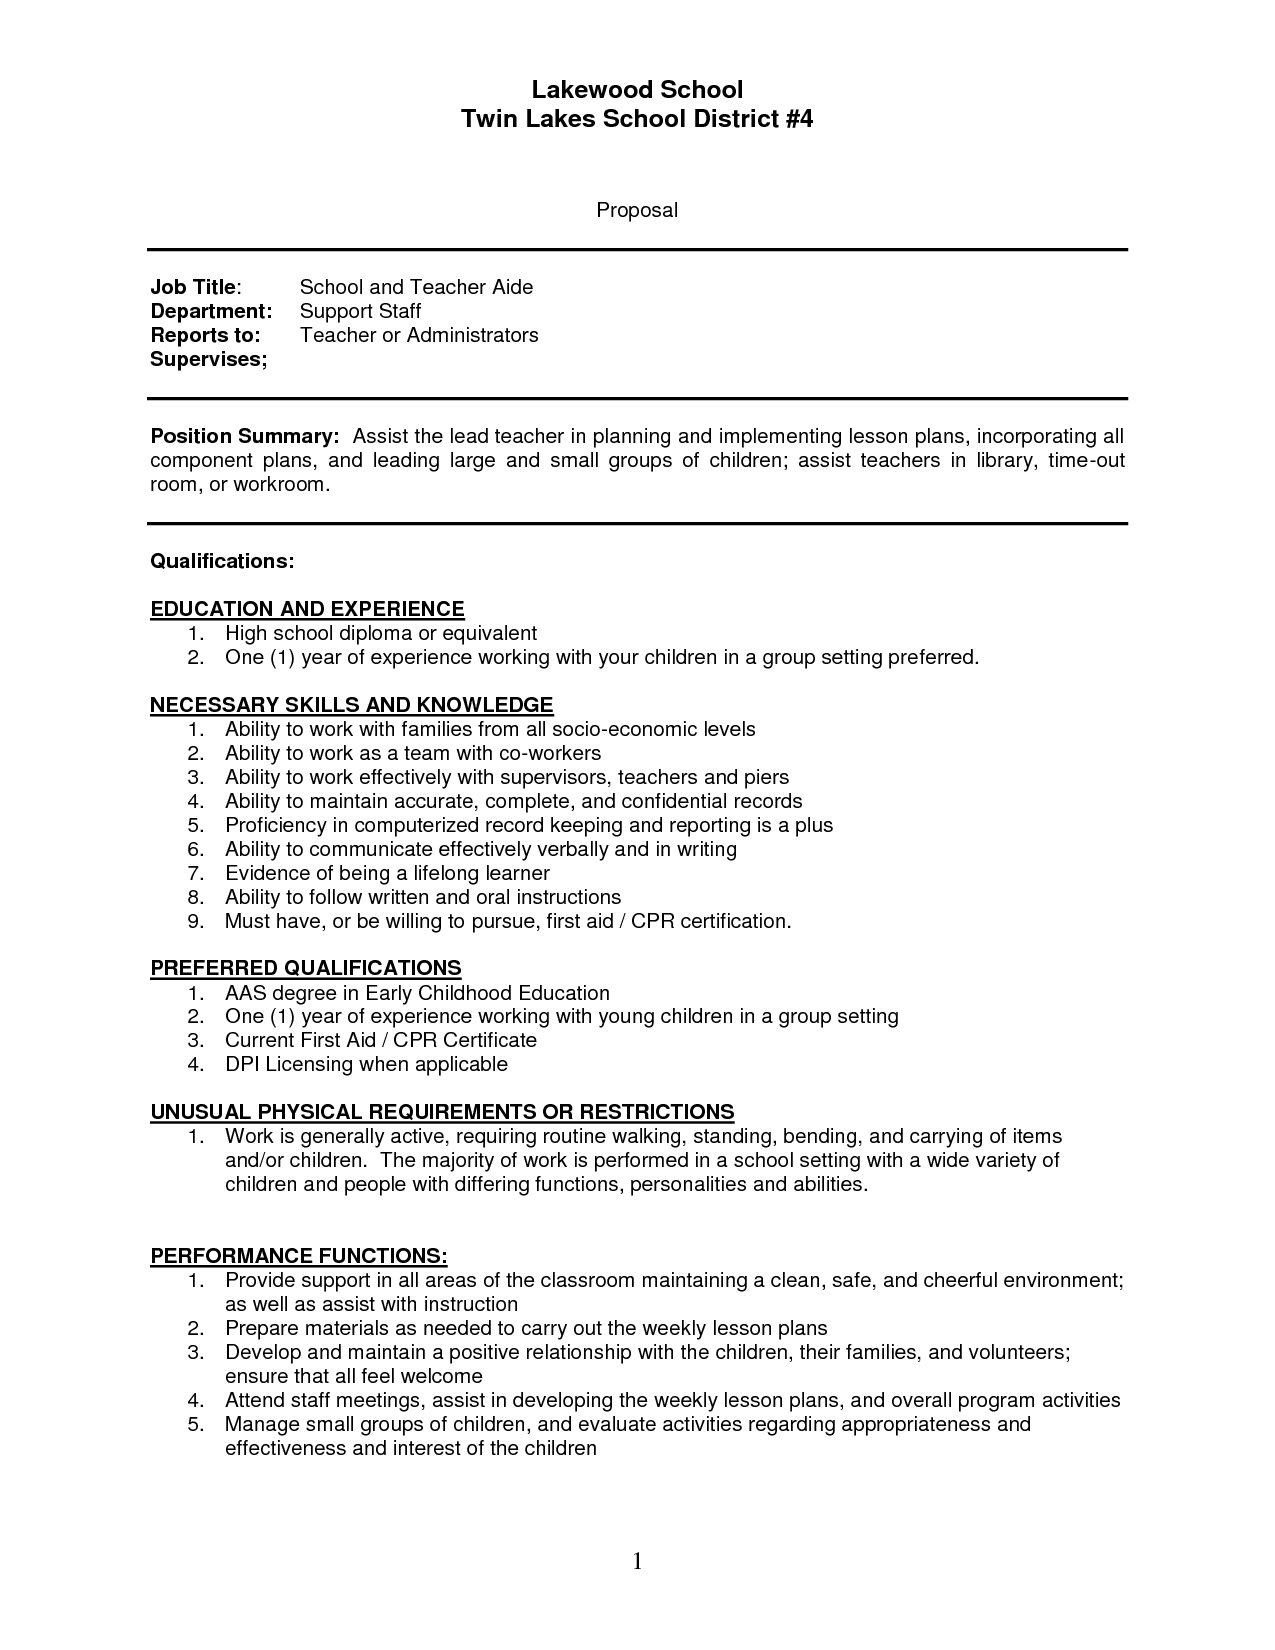 teacher assistant sample resume sample resume of teachers